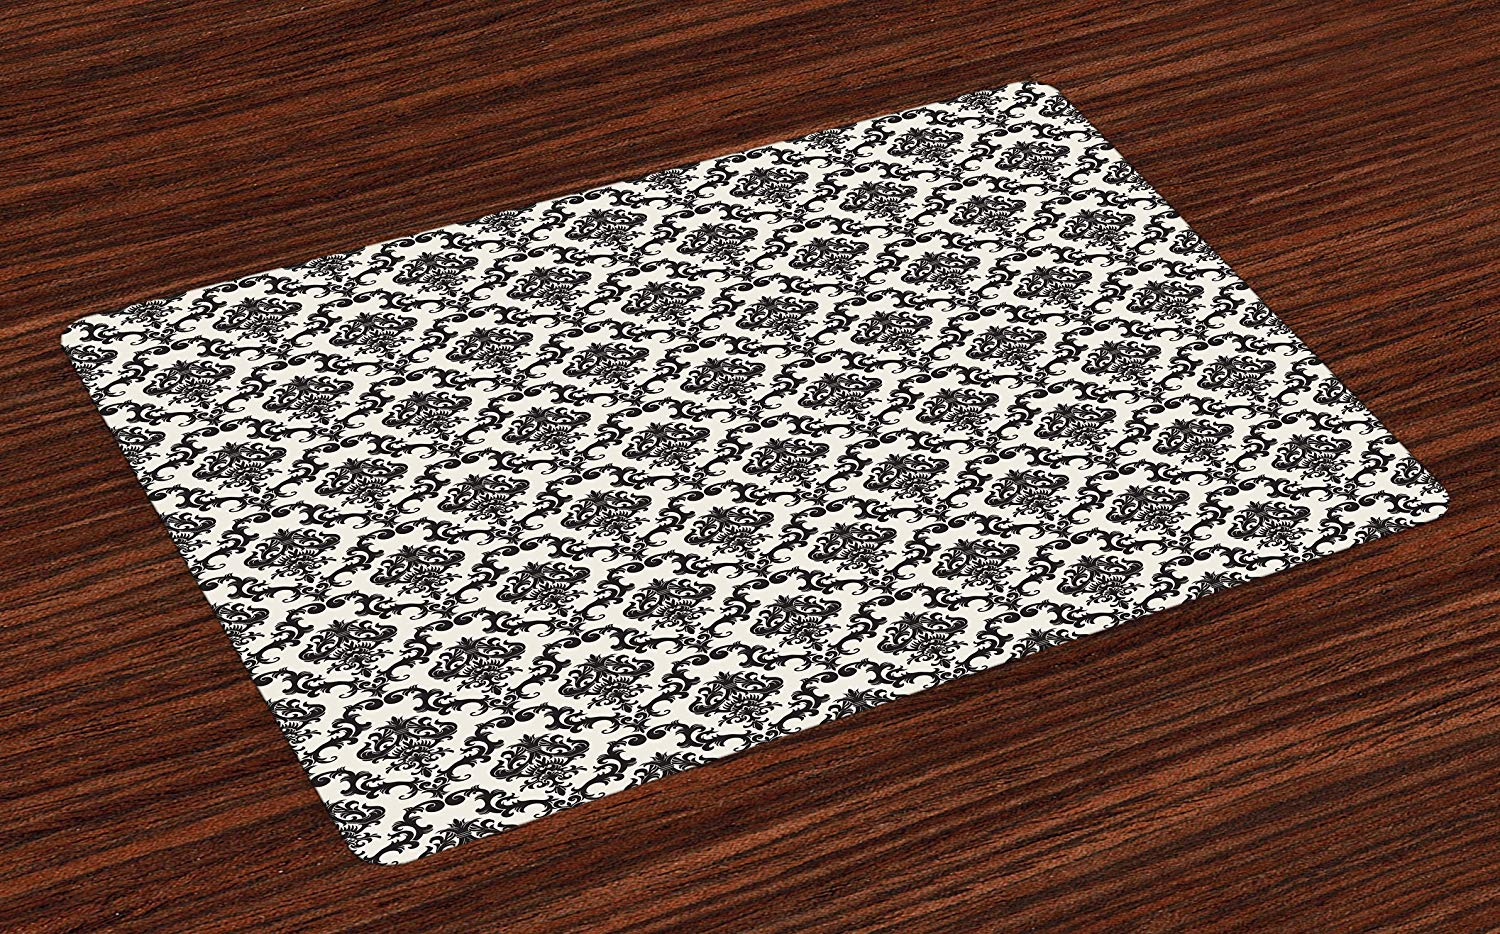 Ambesonne Damask Place Mats Set of 4, Contemporary Western Damask Motif with Weave Effect Floral Leaves Graphic Design, Washable Fabric Placemats for Dining Room Kitchen Table Decor, Beige Black